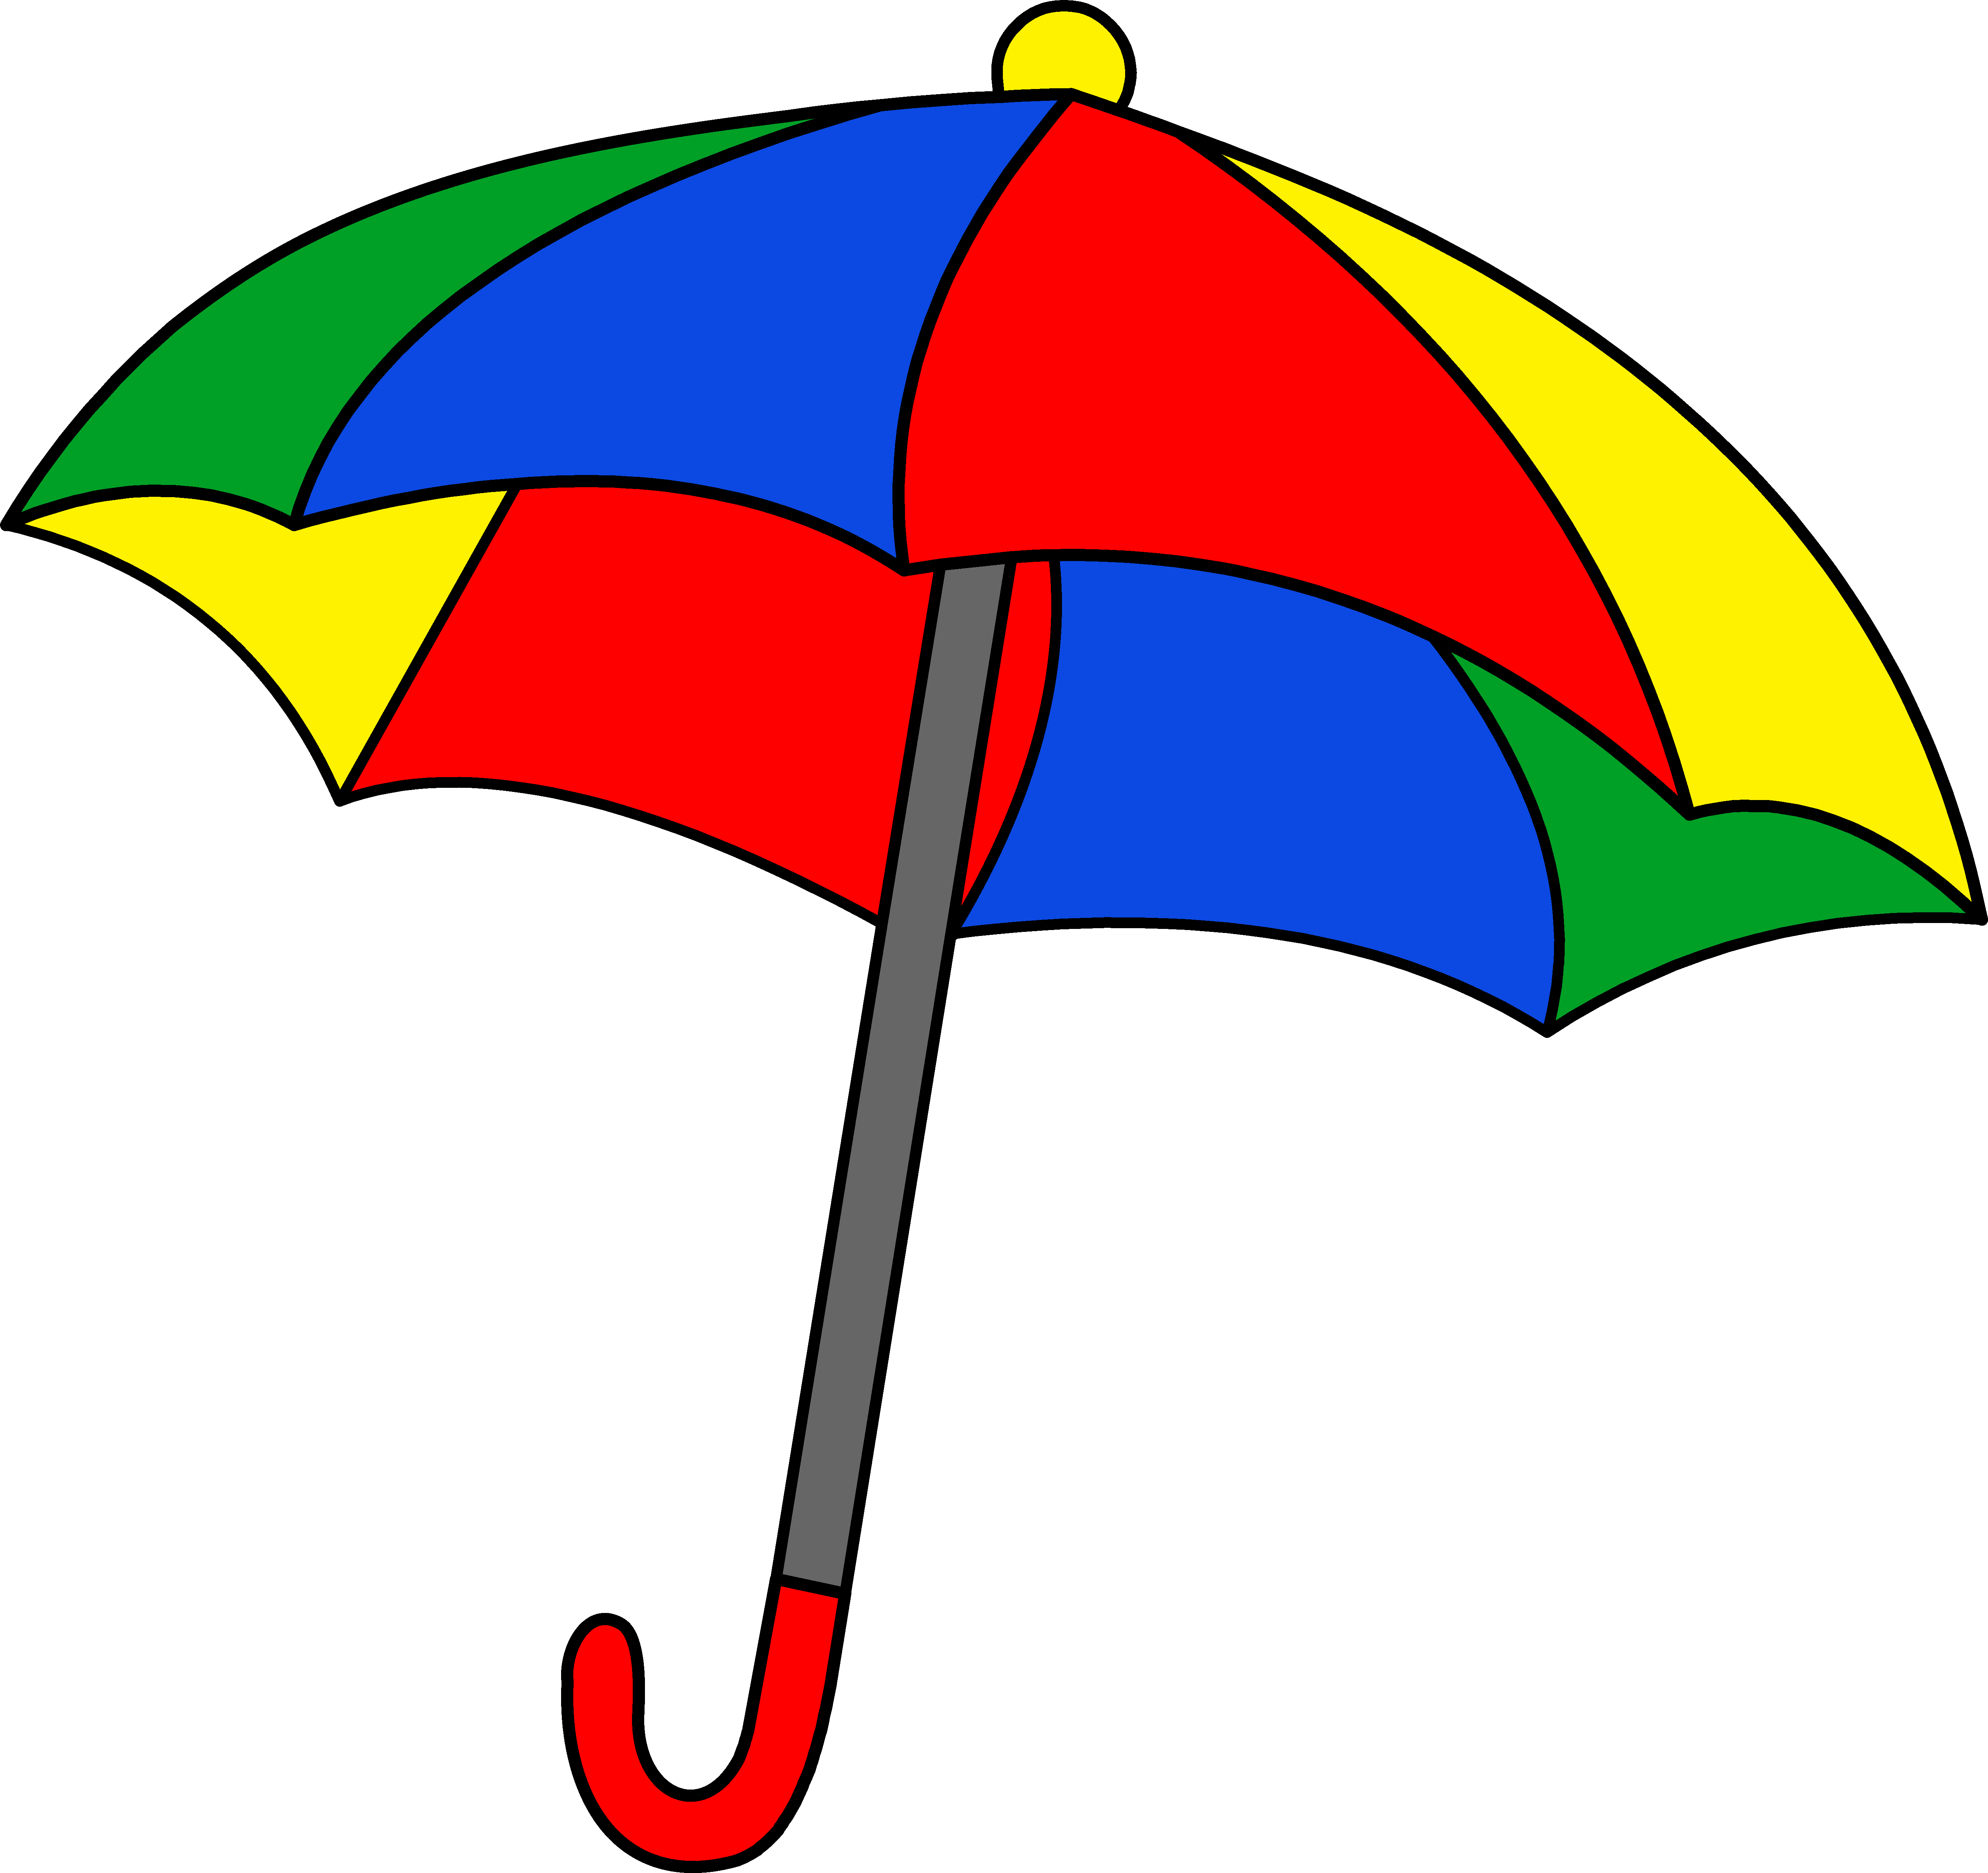 Images of google search. Showering clipart many umbrella